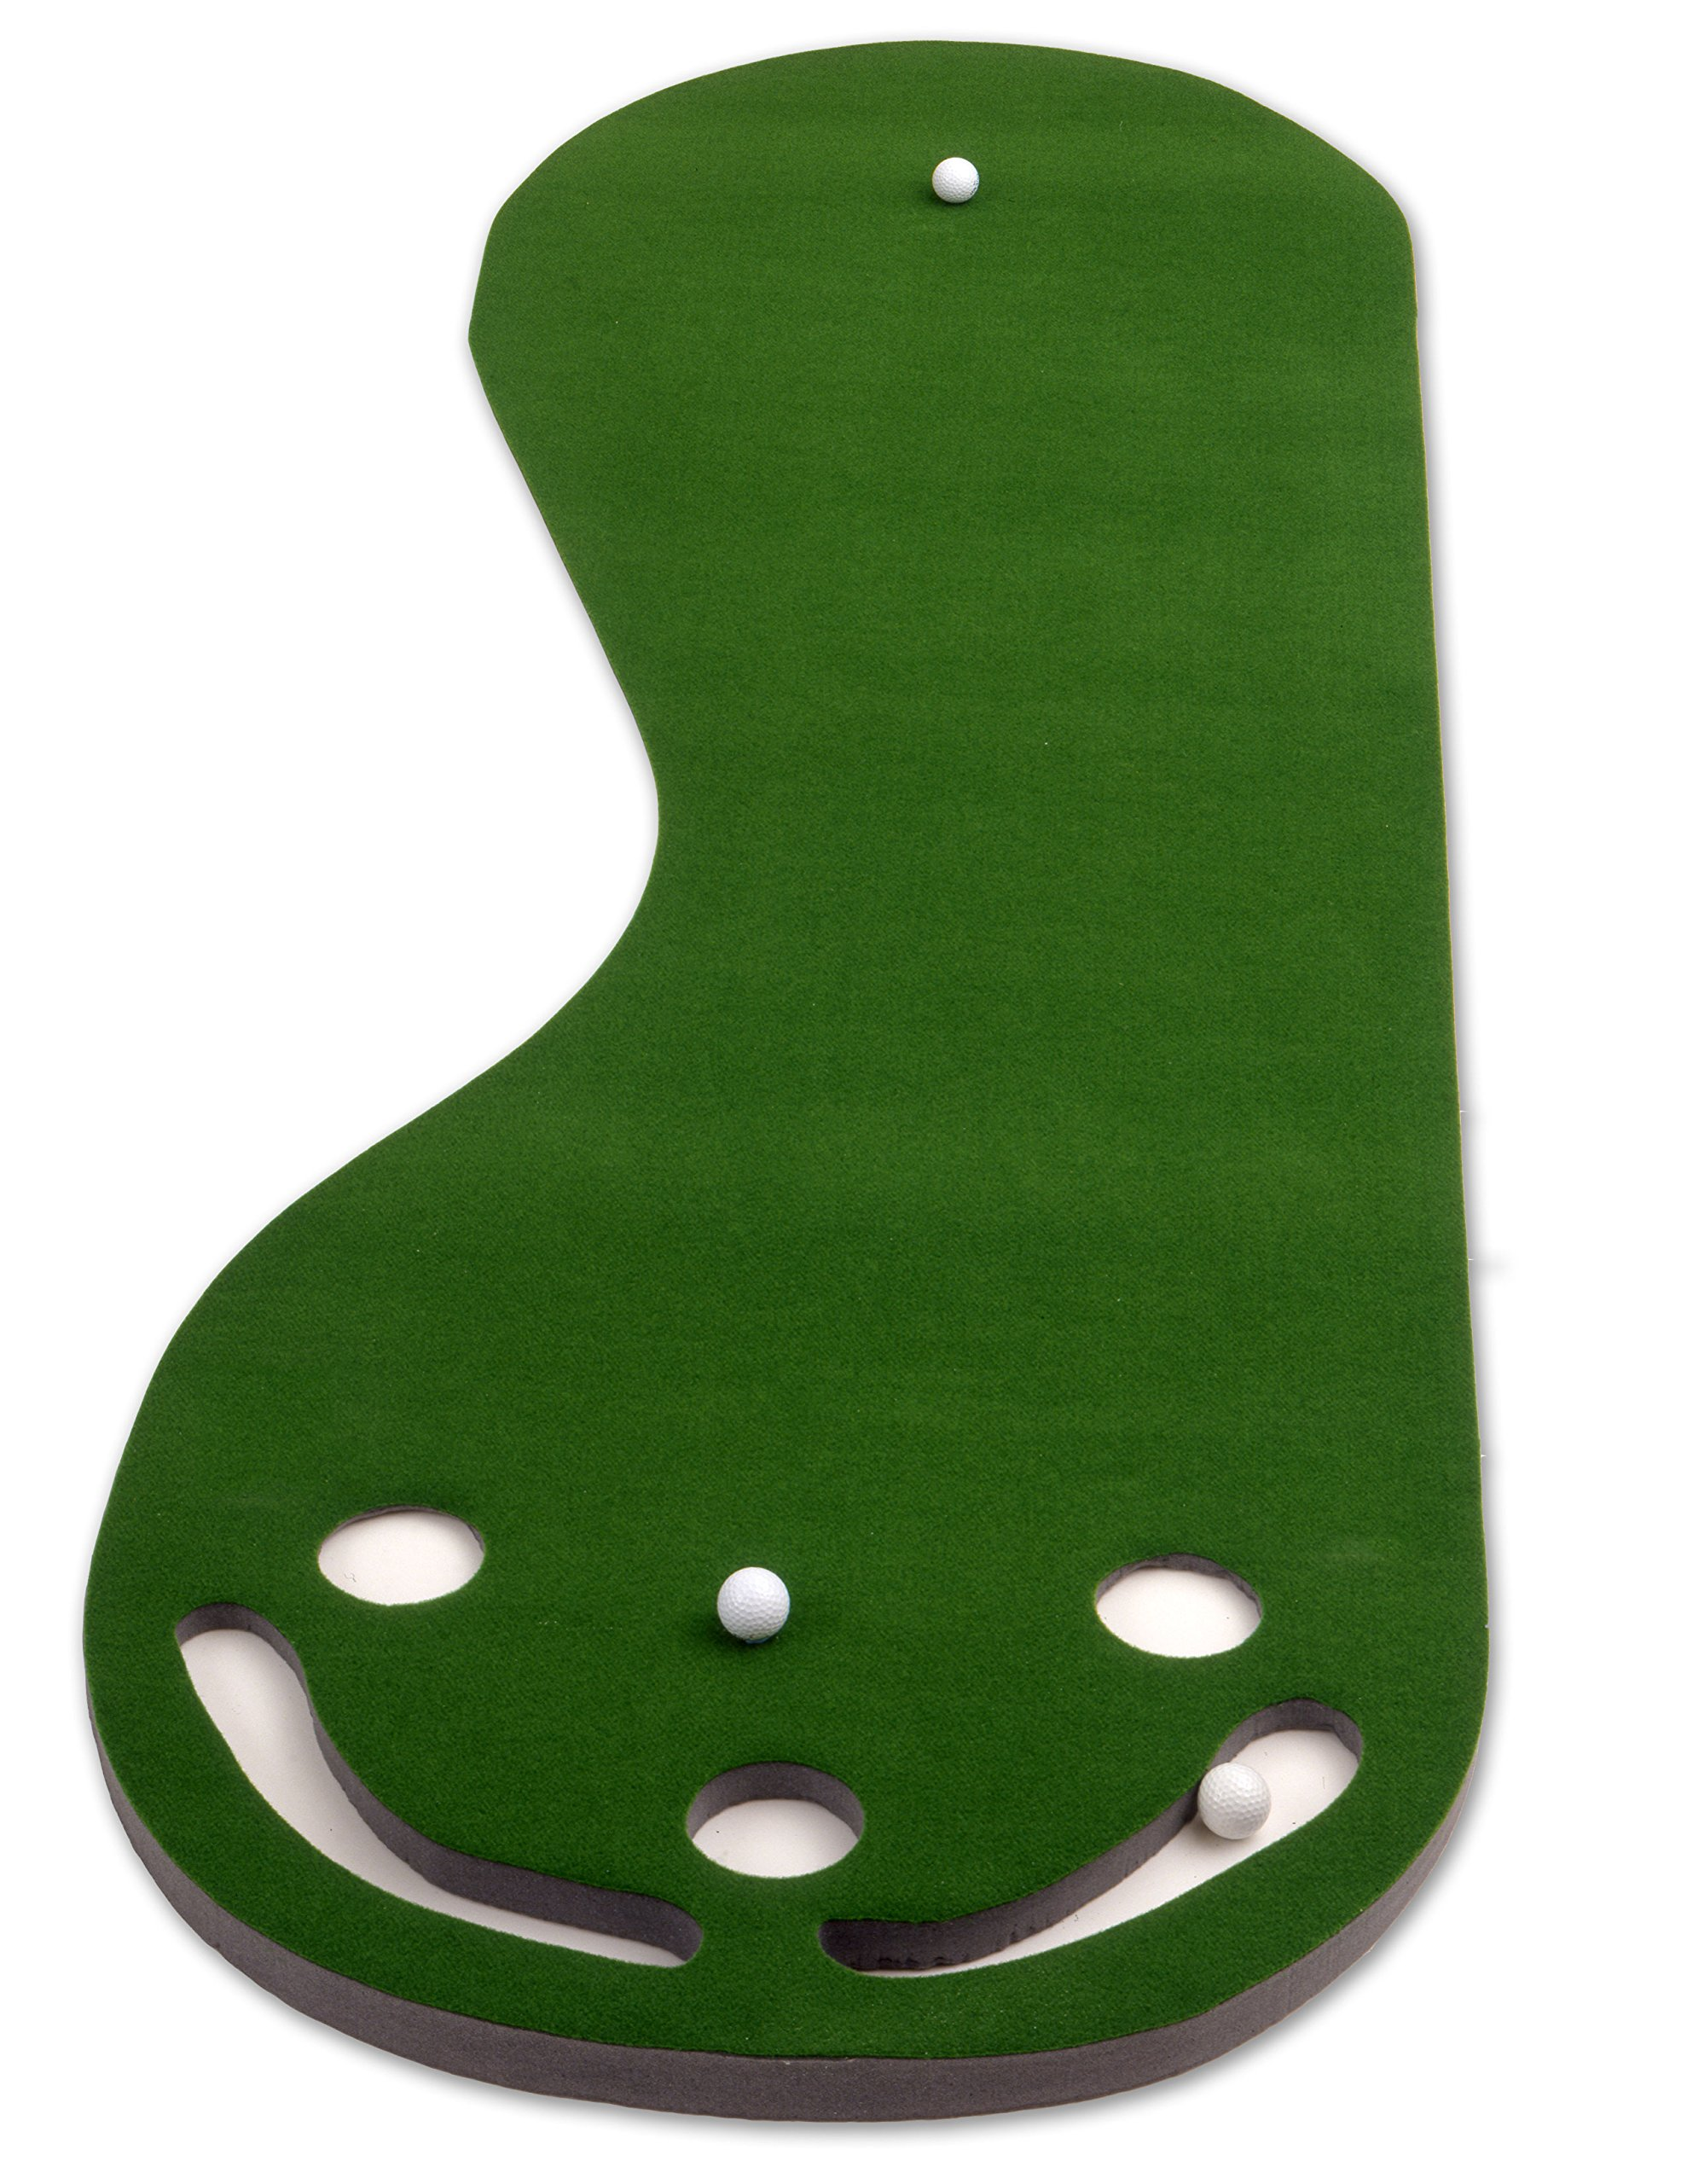 Putt-A-Bout Grassroots Par Three Putting Green (9-feet x 3-feet)